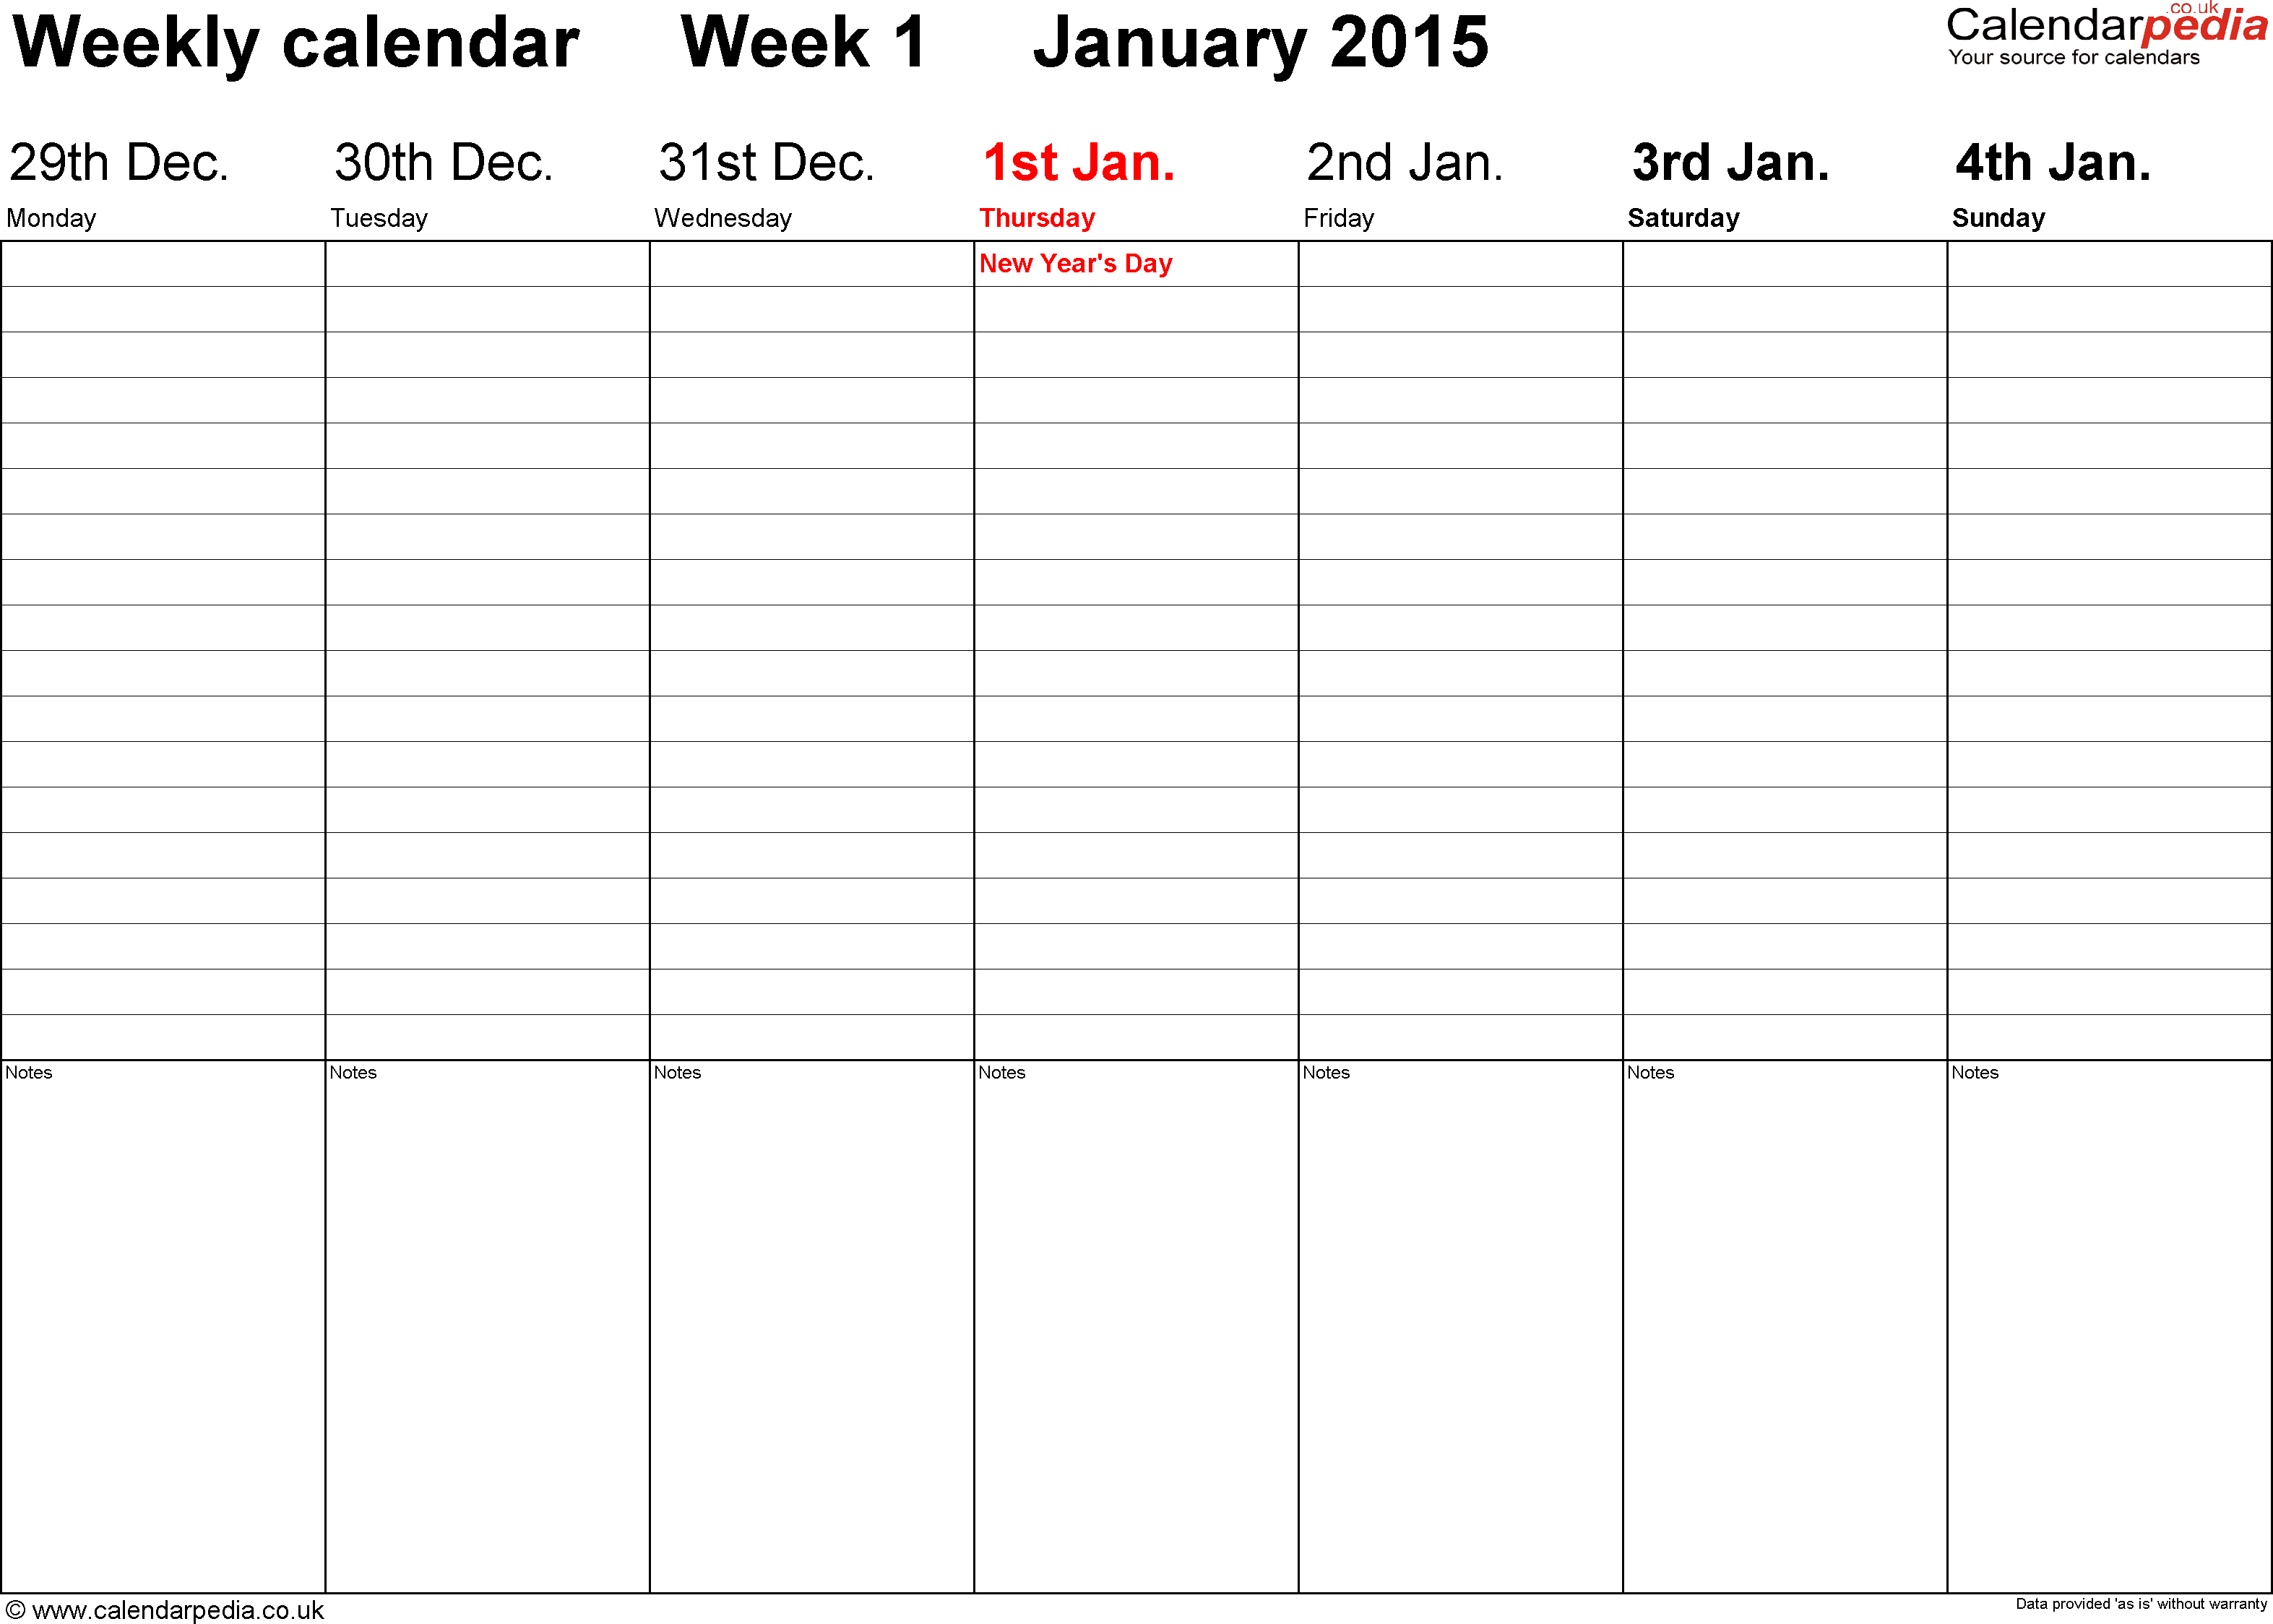 Calendar Layout Pages : Weekly calendar uk free printable templates for pdf